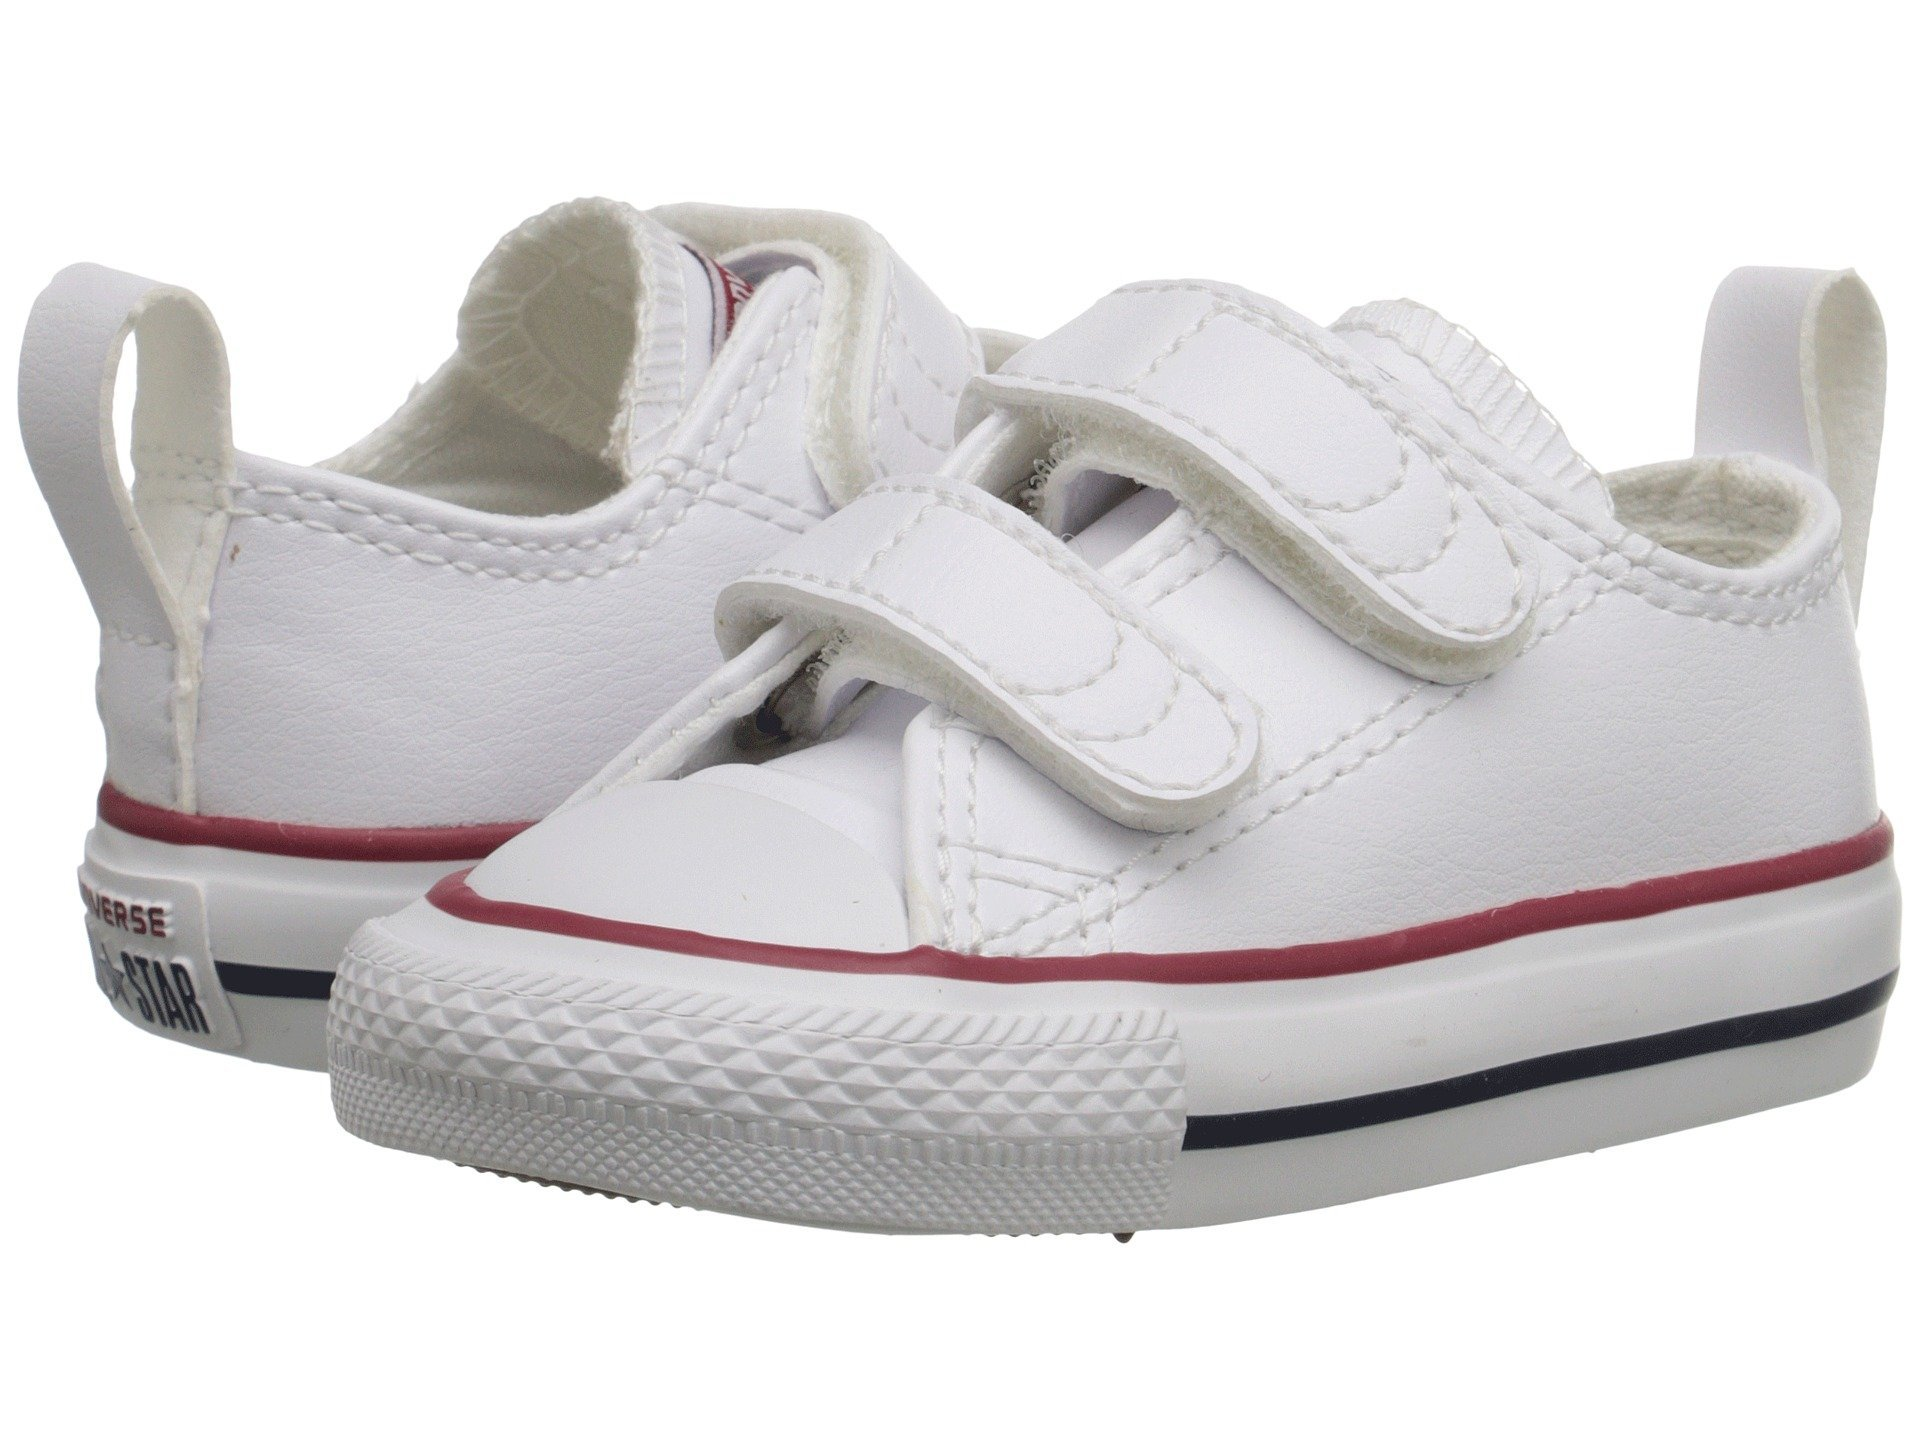 Converse Kids' Chuck Taylor All Star 2v Low Top Sneaker (6 M US Toddler, White Leather)